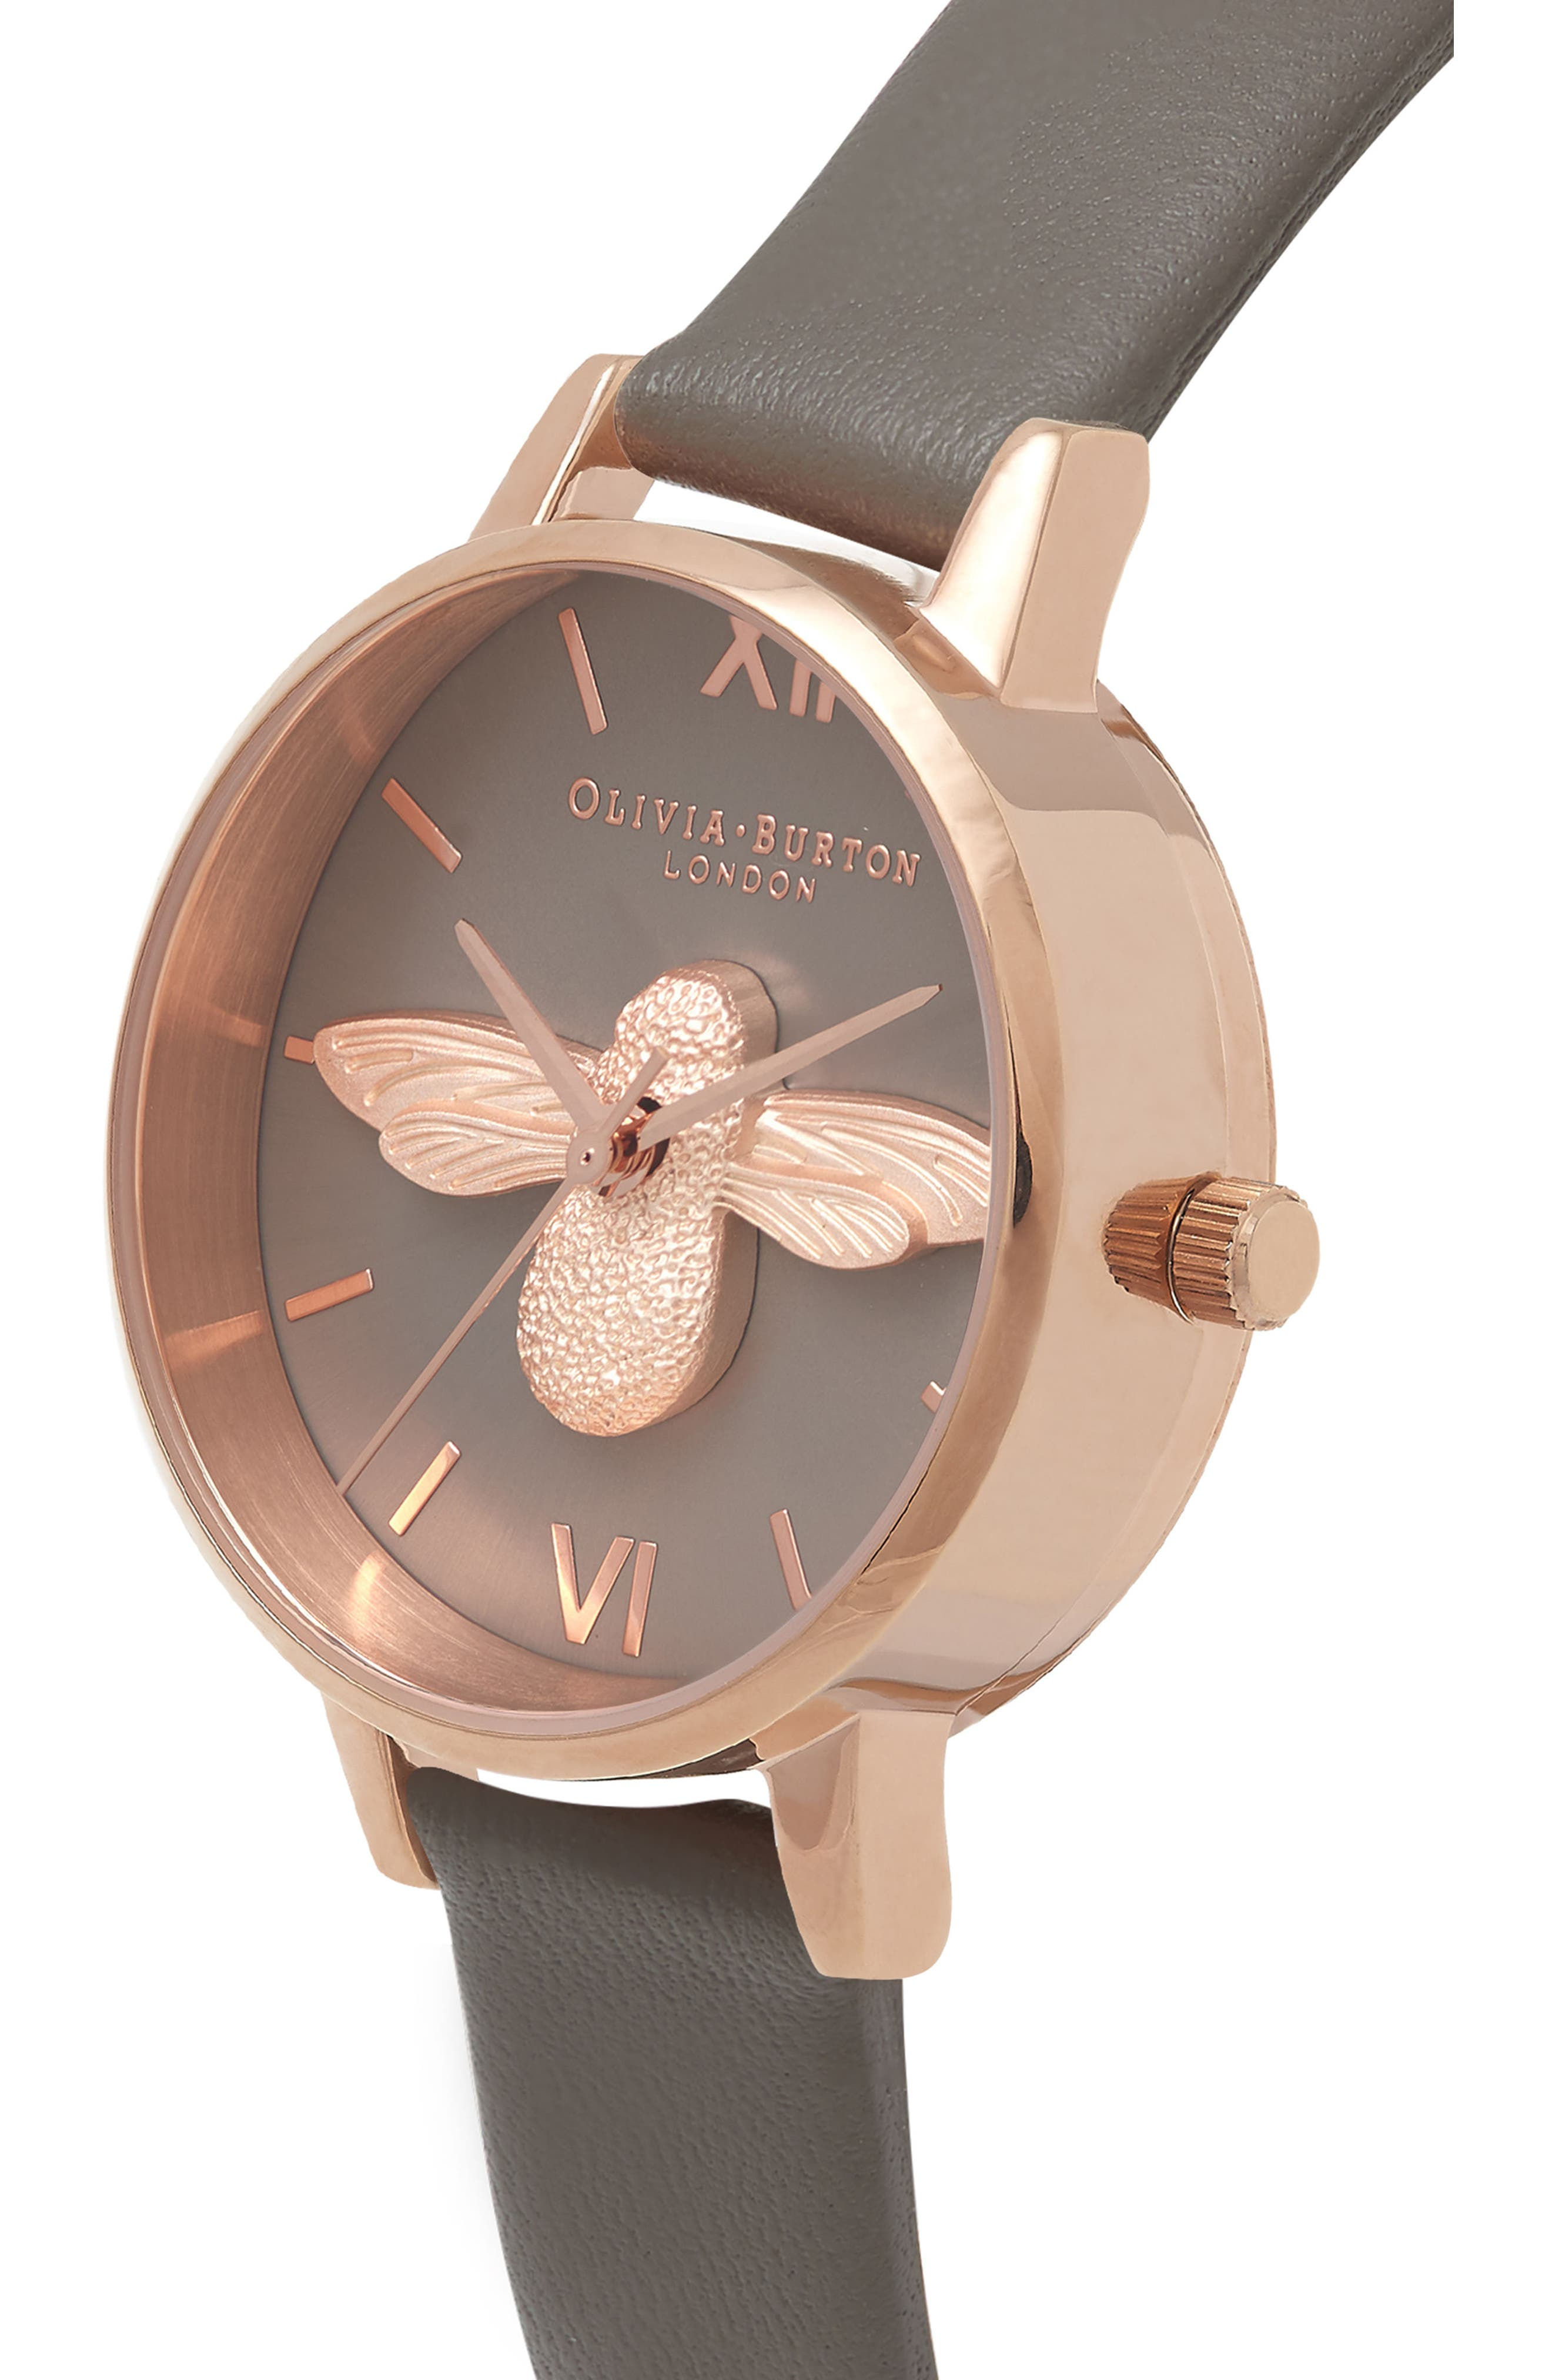 3D Bee Leather Strap Watch, 30mm,                             Alternate thumbnail 3, color,                             London Grey/ Bee/ Rose Gold